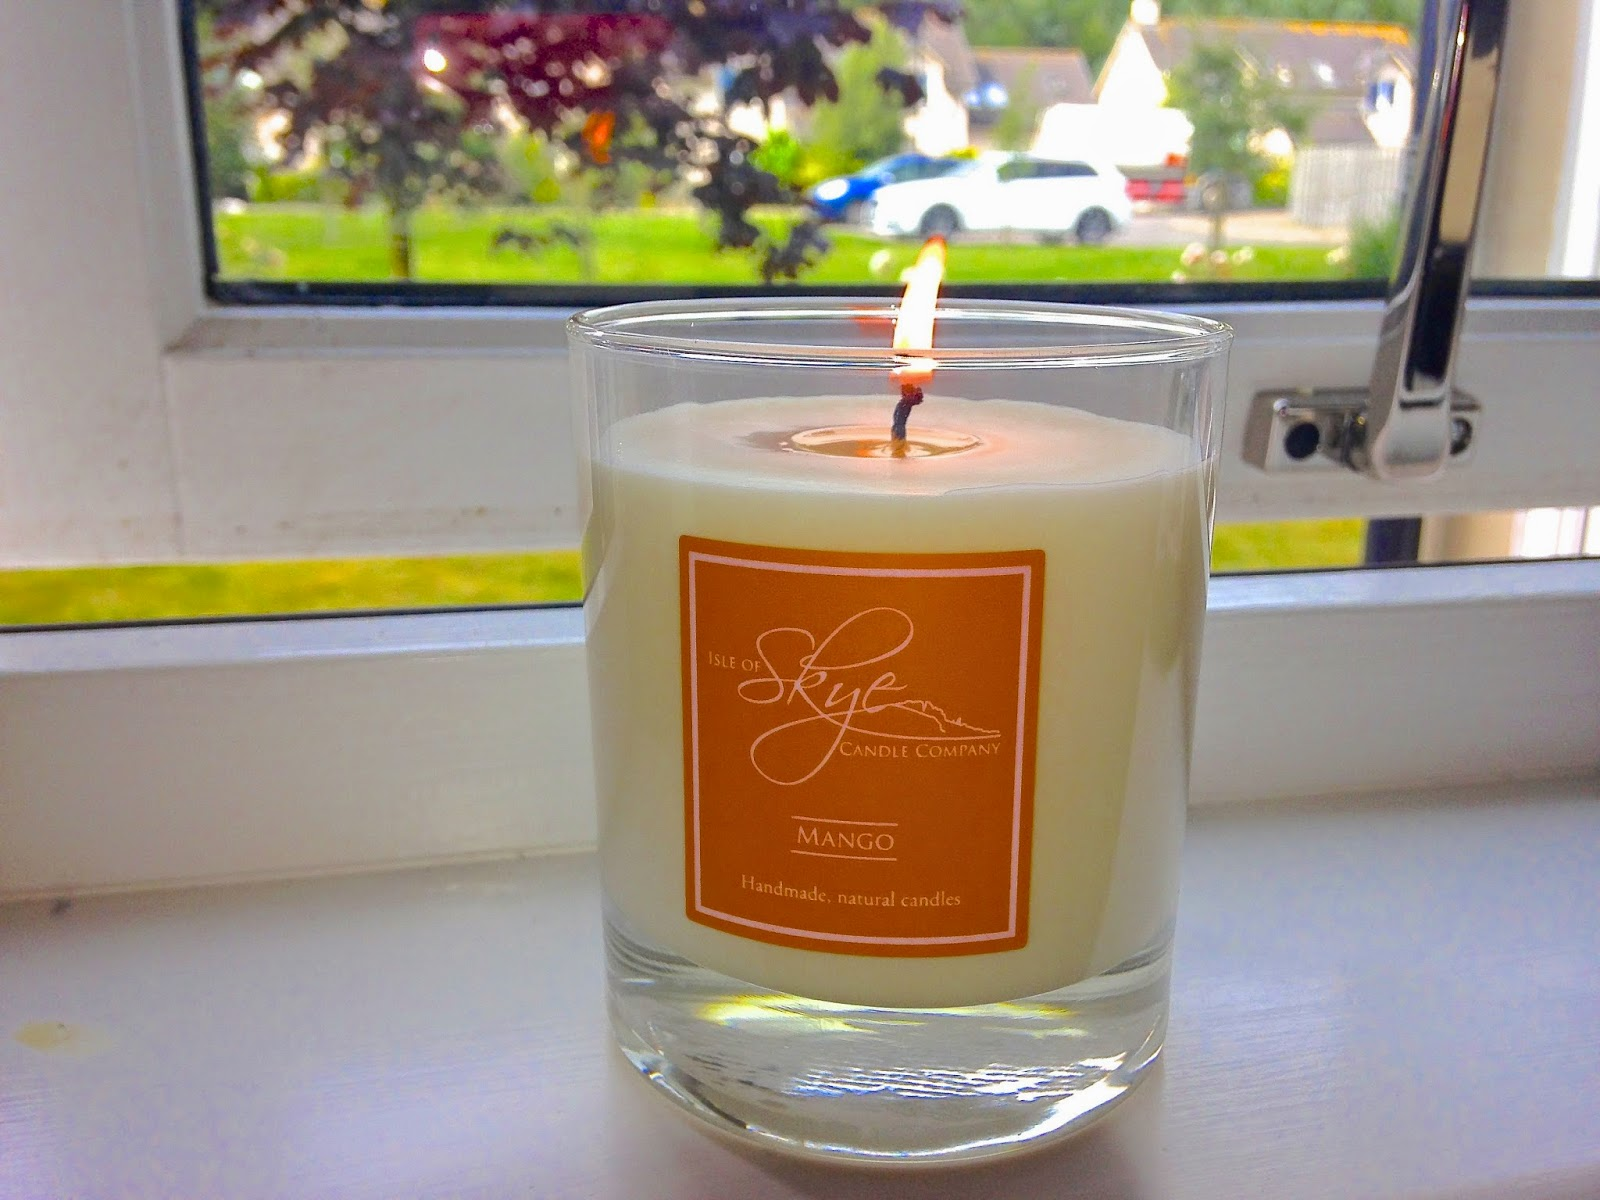 Mango, Isle of Skye Candle Company, Candles